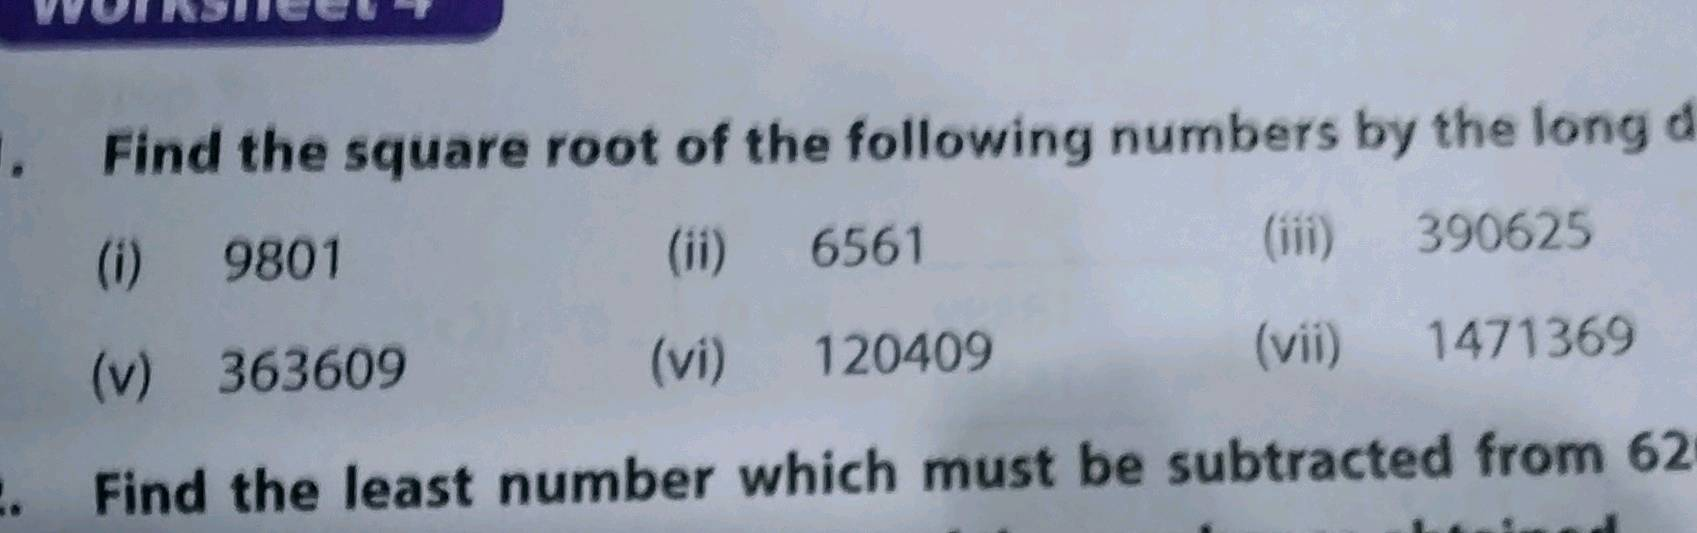 Square Root Of 225 By Repeated Subtraction Method : Rational numbers and irrational numbers.